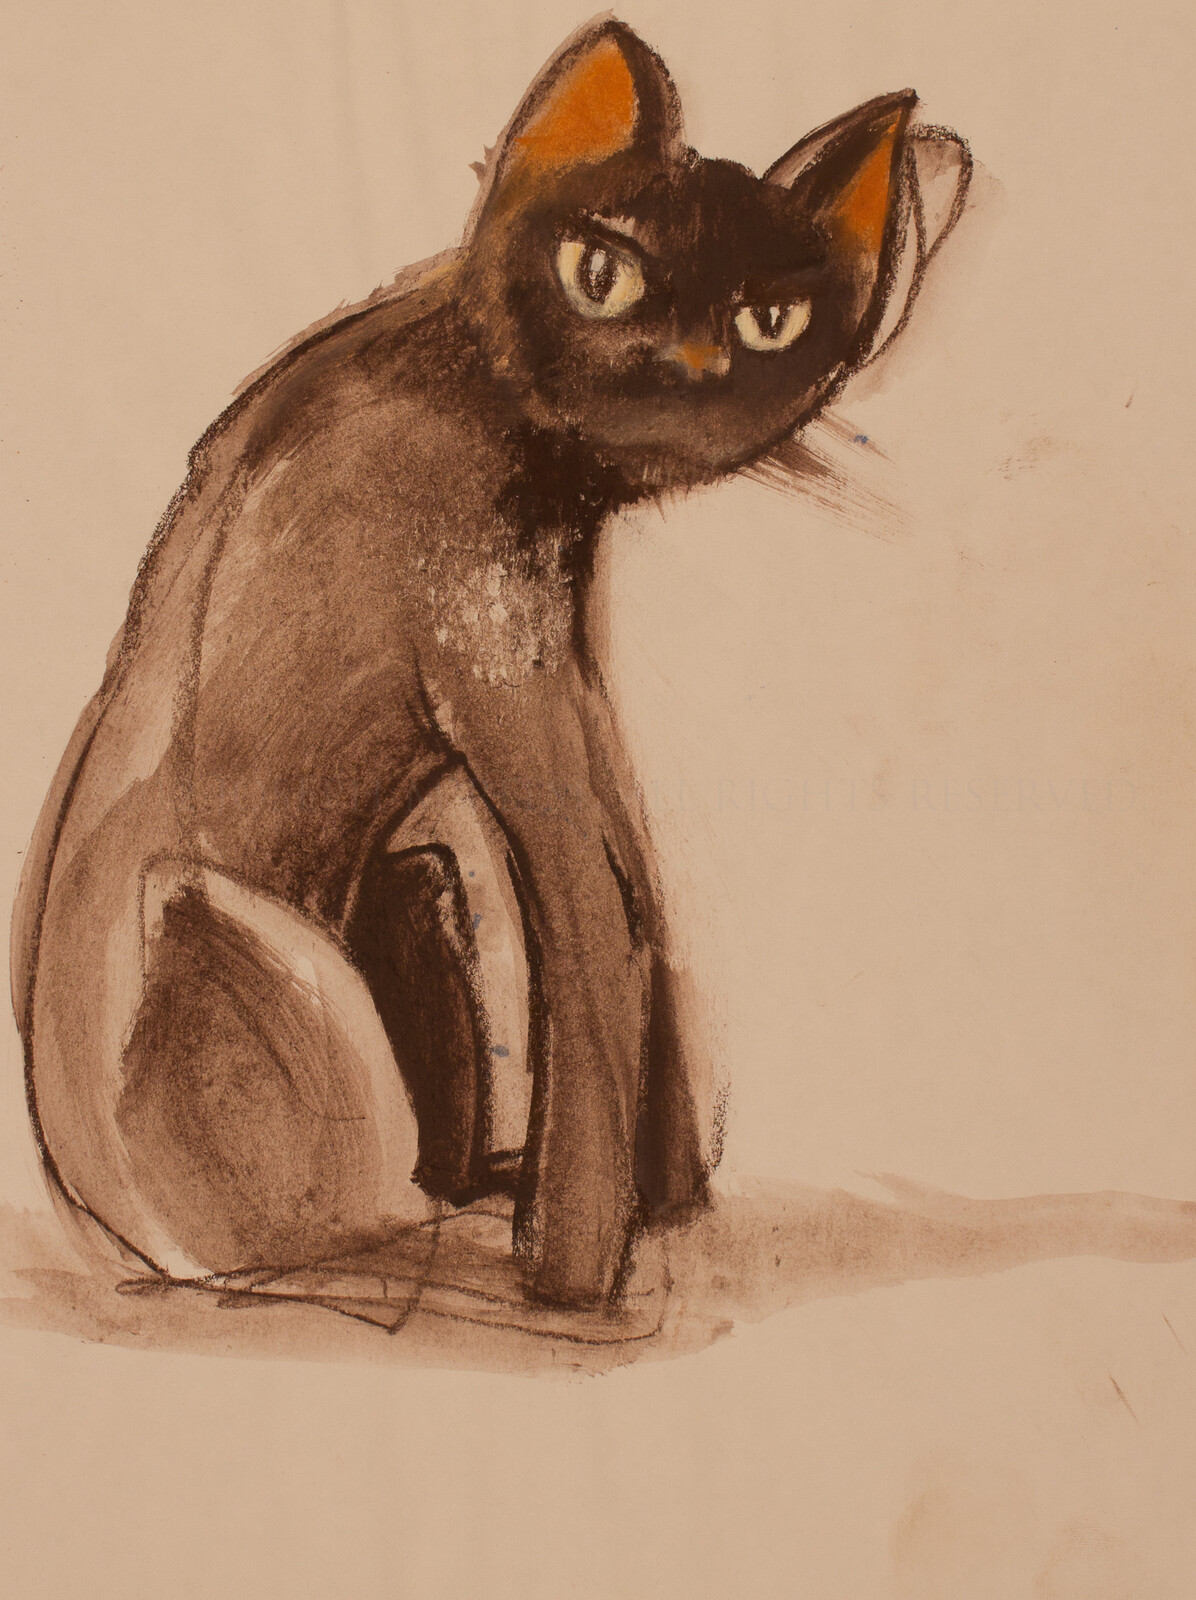 Conte sketch of Ozzy the cat. An ever-suspicious creature with insatiable curiosity.